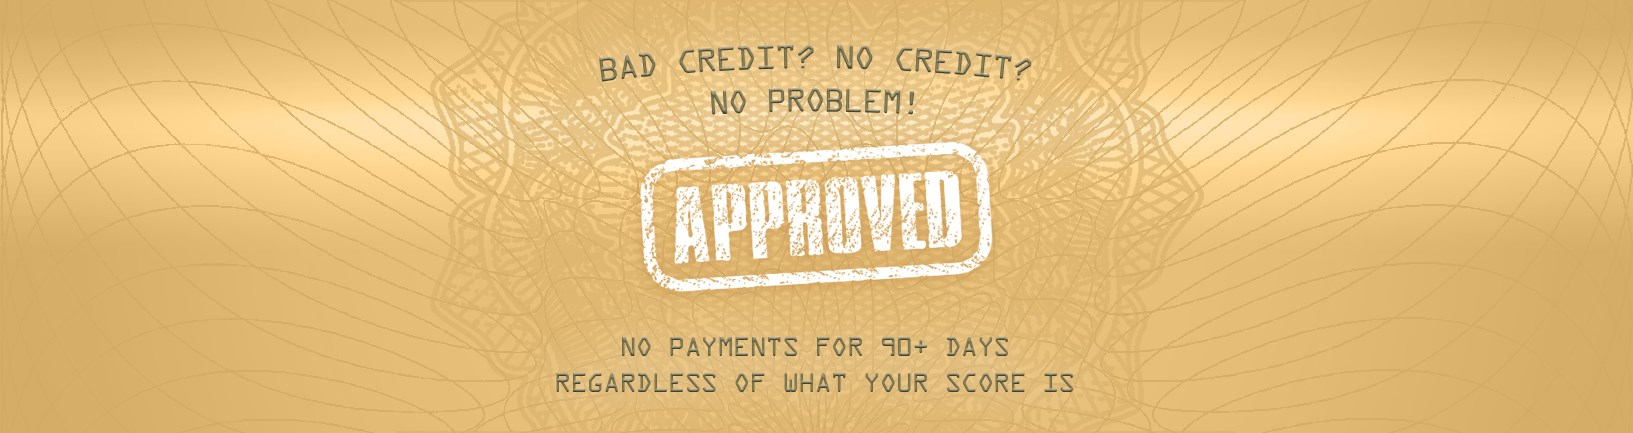 Bad Credit? No Credit? No Problem! No Payments for 90 days regardless of what your score is.